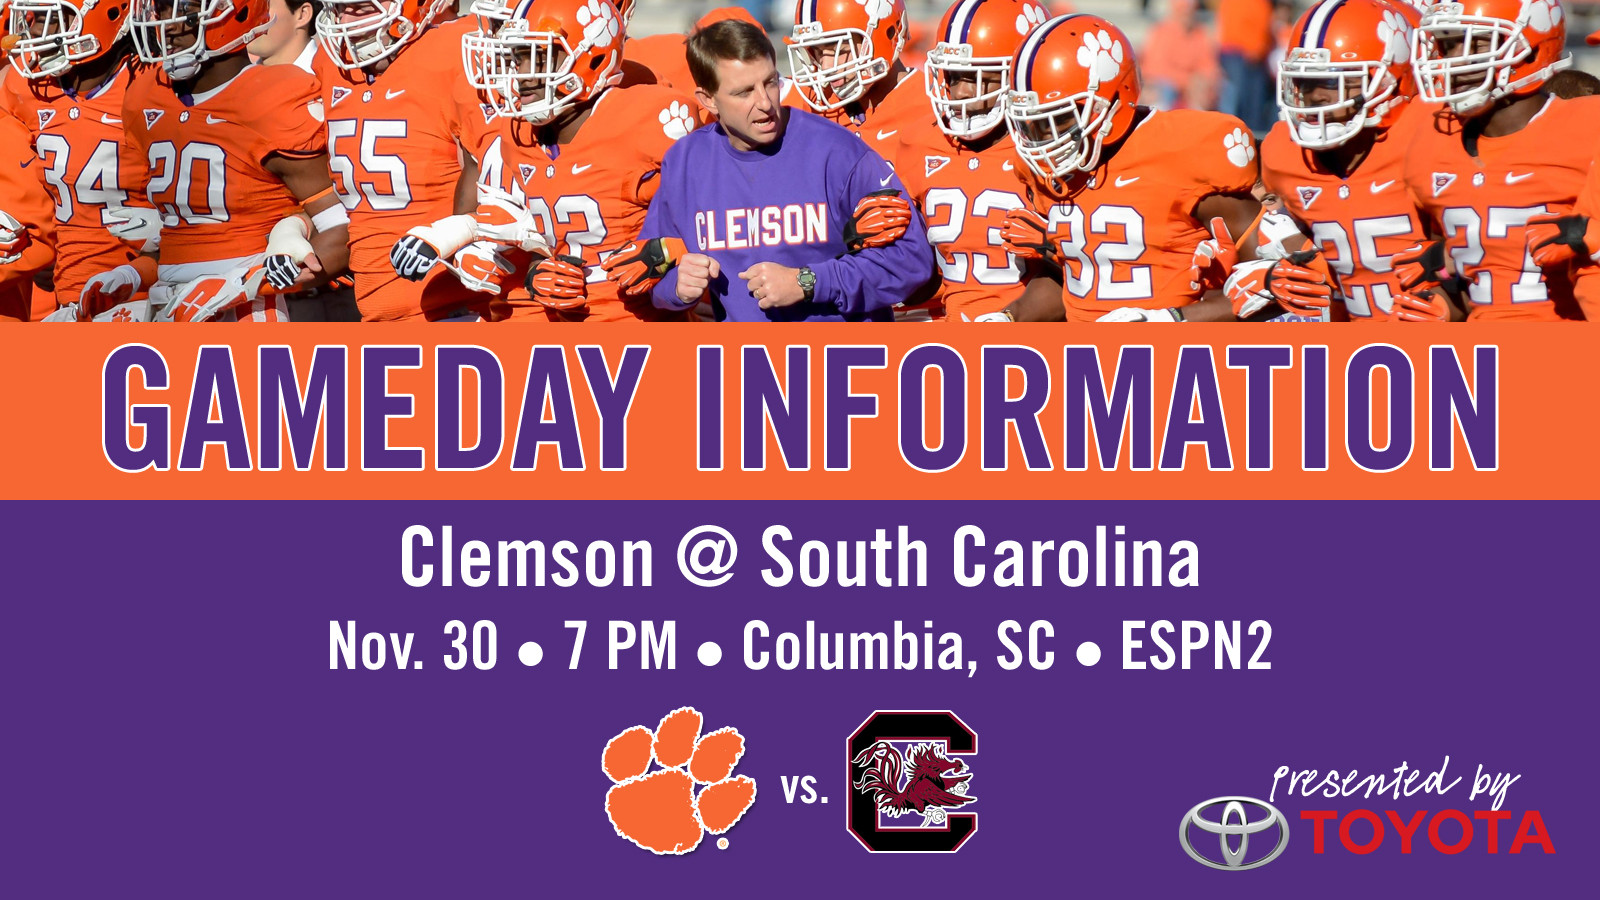 Clemson @ South Carolina Football Gameday Information